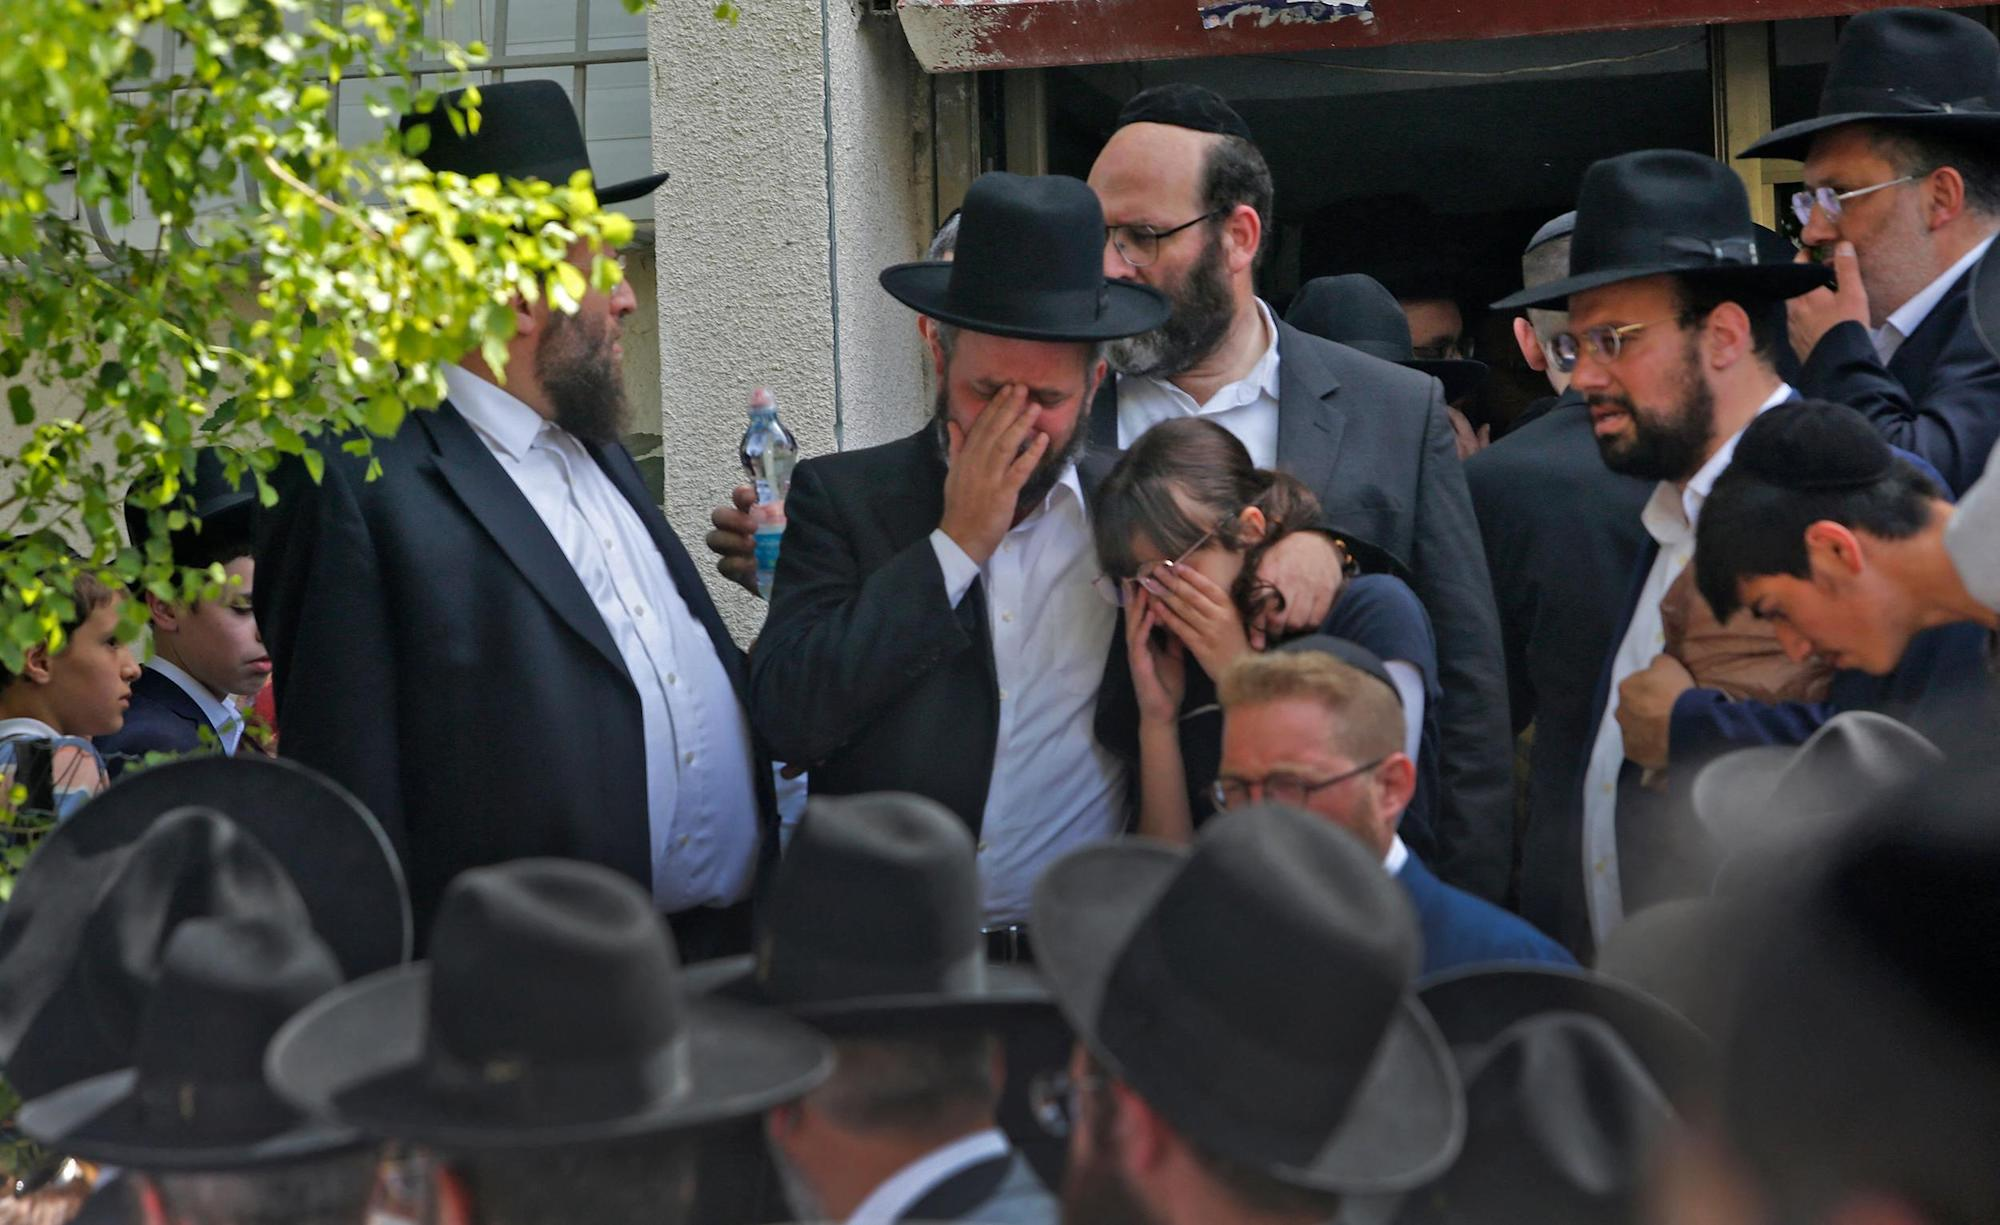 Suspicion and separation: After deadly stampede, Israel examines role of ultra-Orthodox Photo